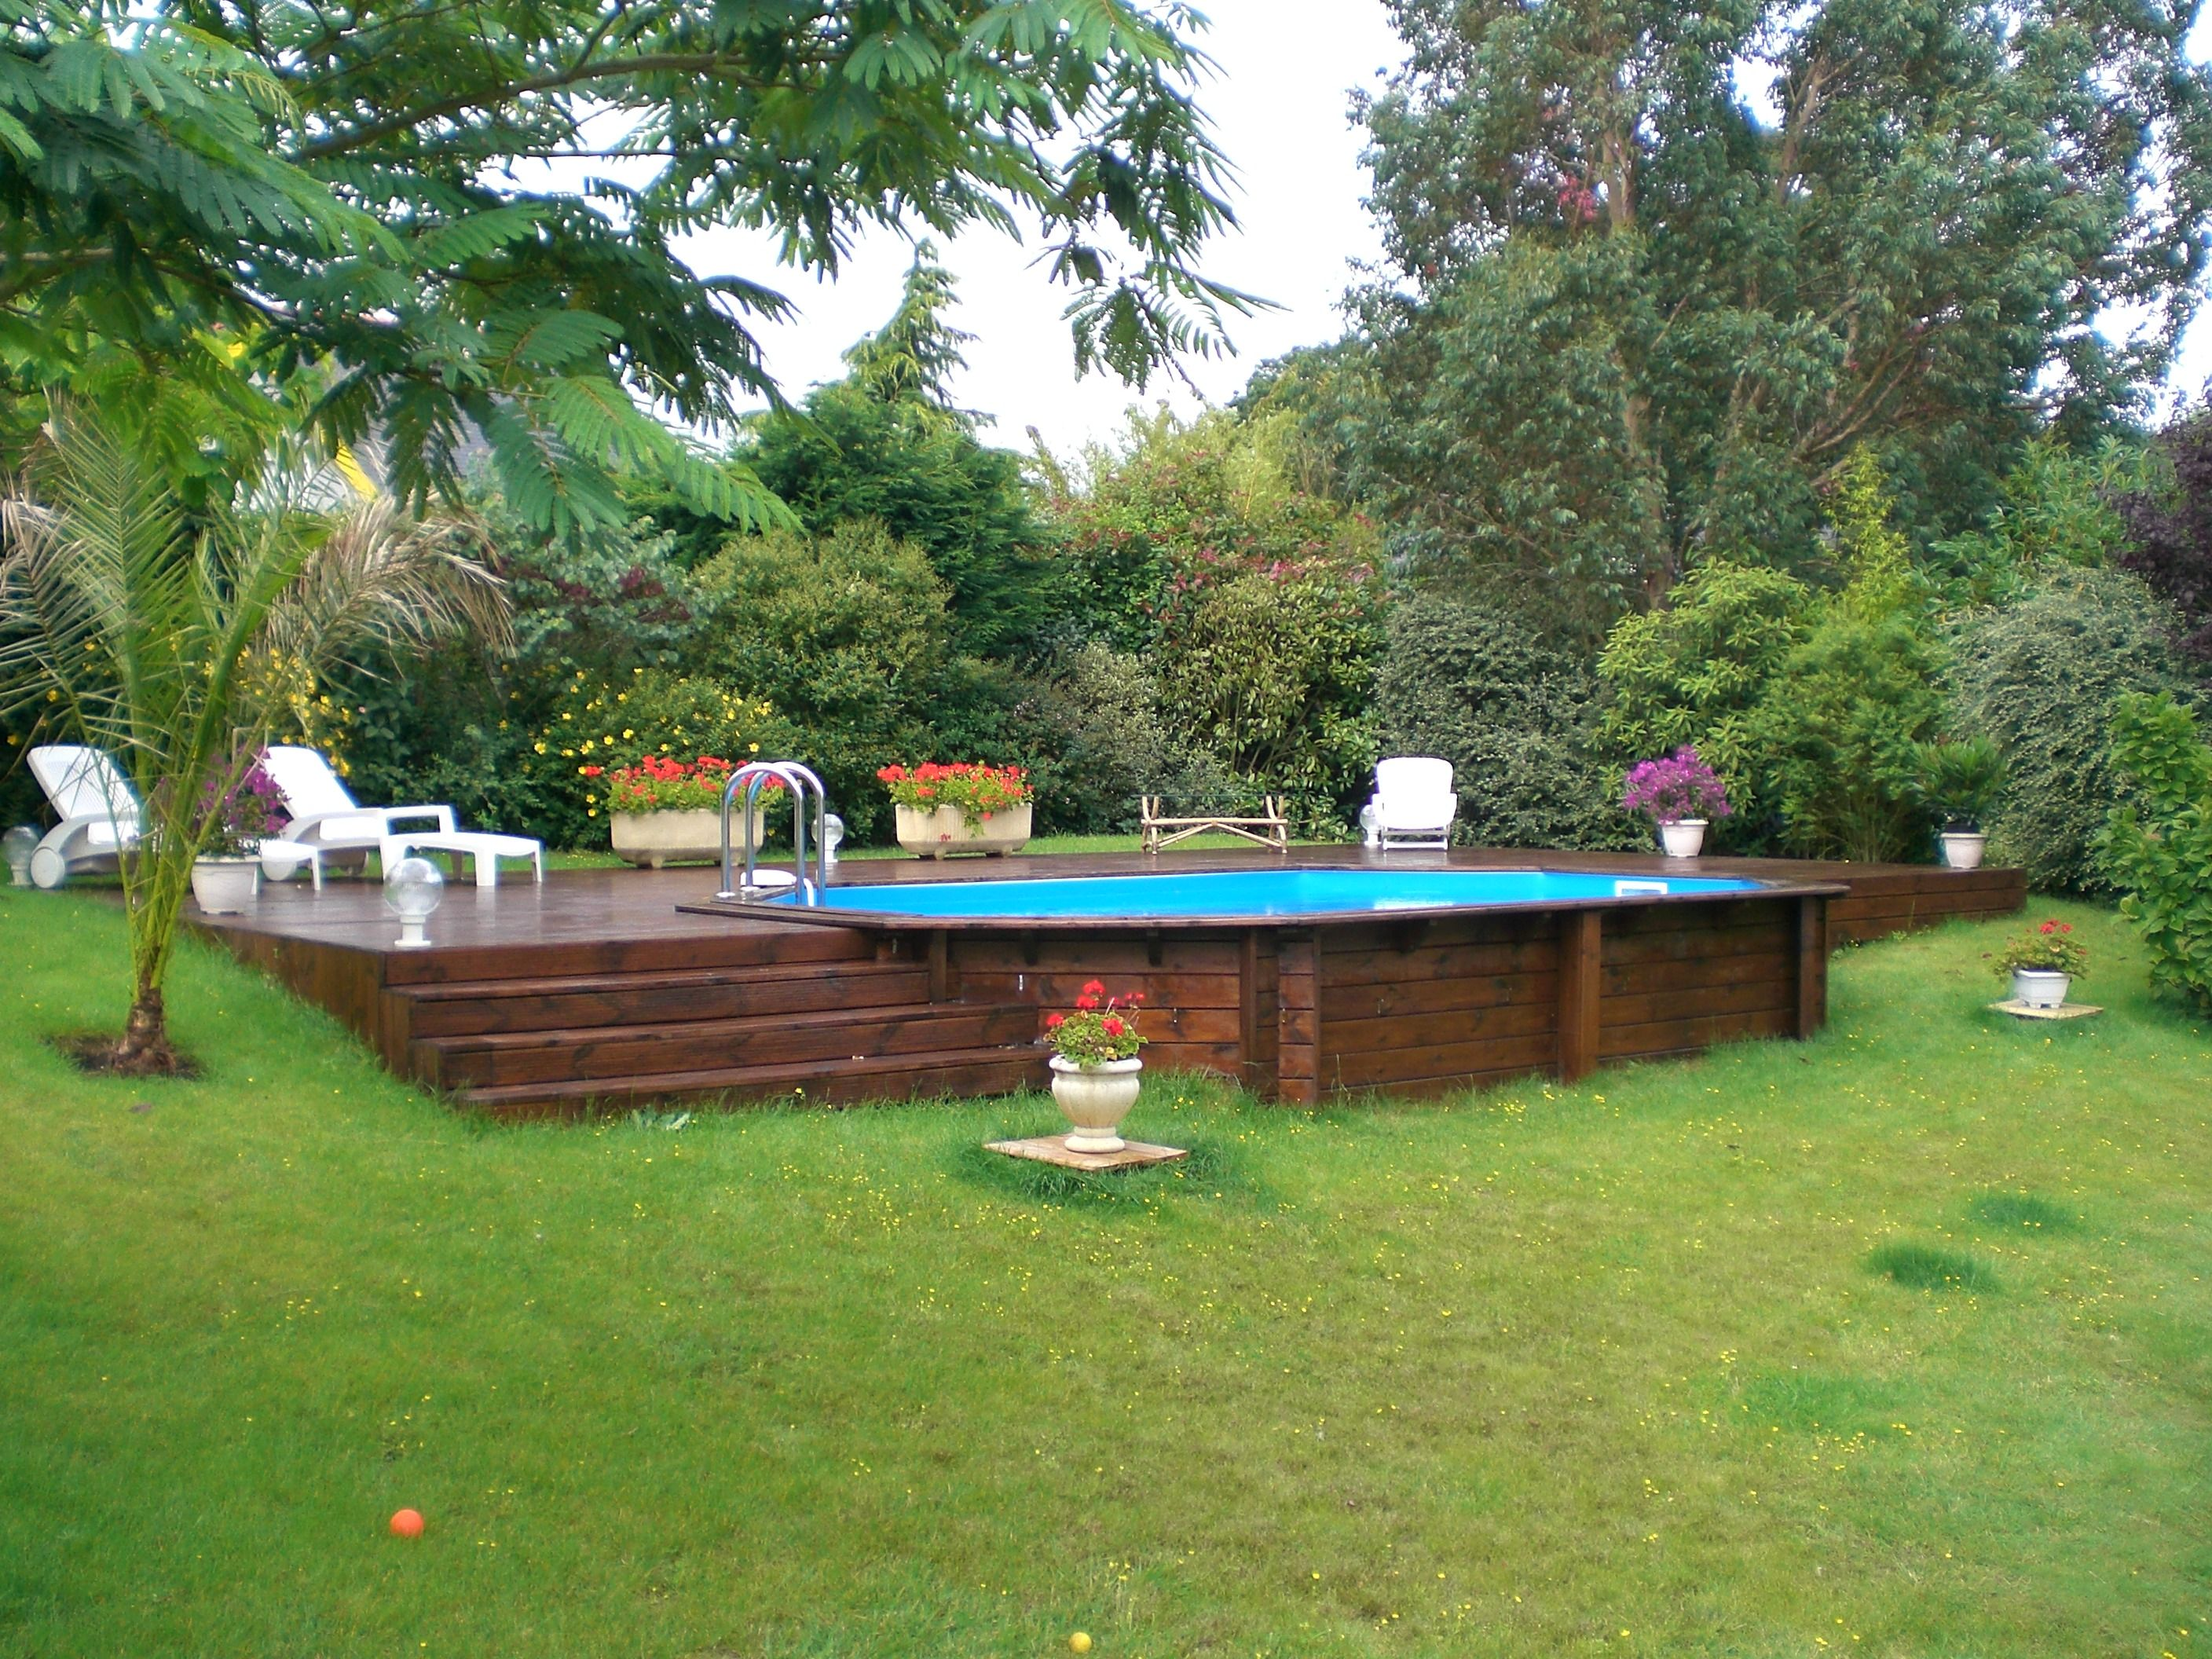 Piscine hors sol en bois semi enterr e sur terrain en for Amenagement piscine hors sol photo